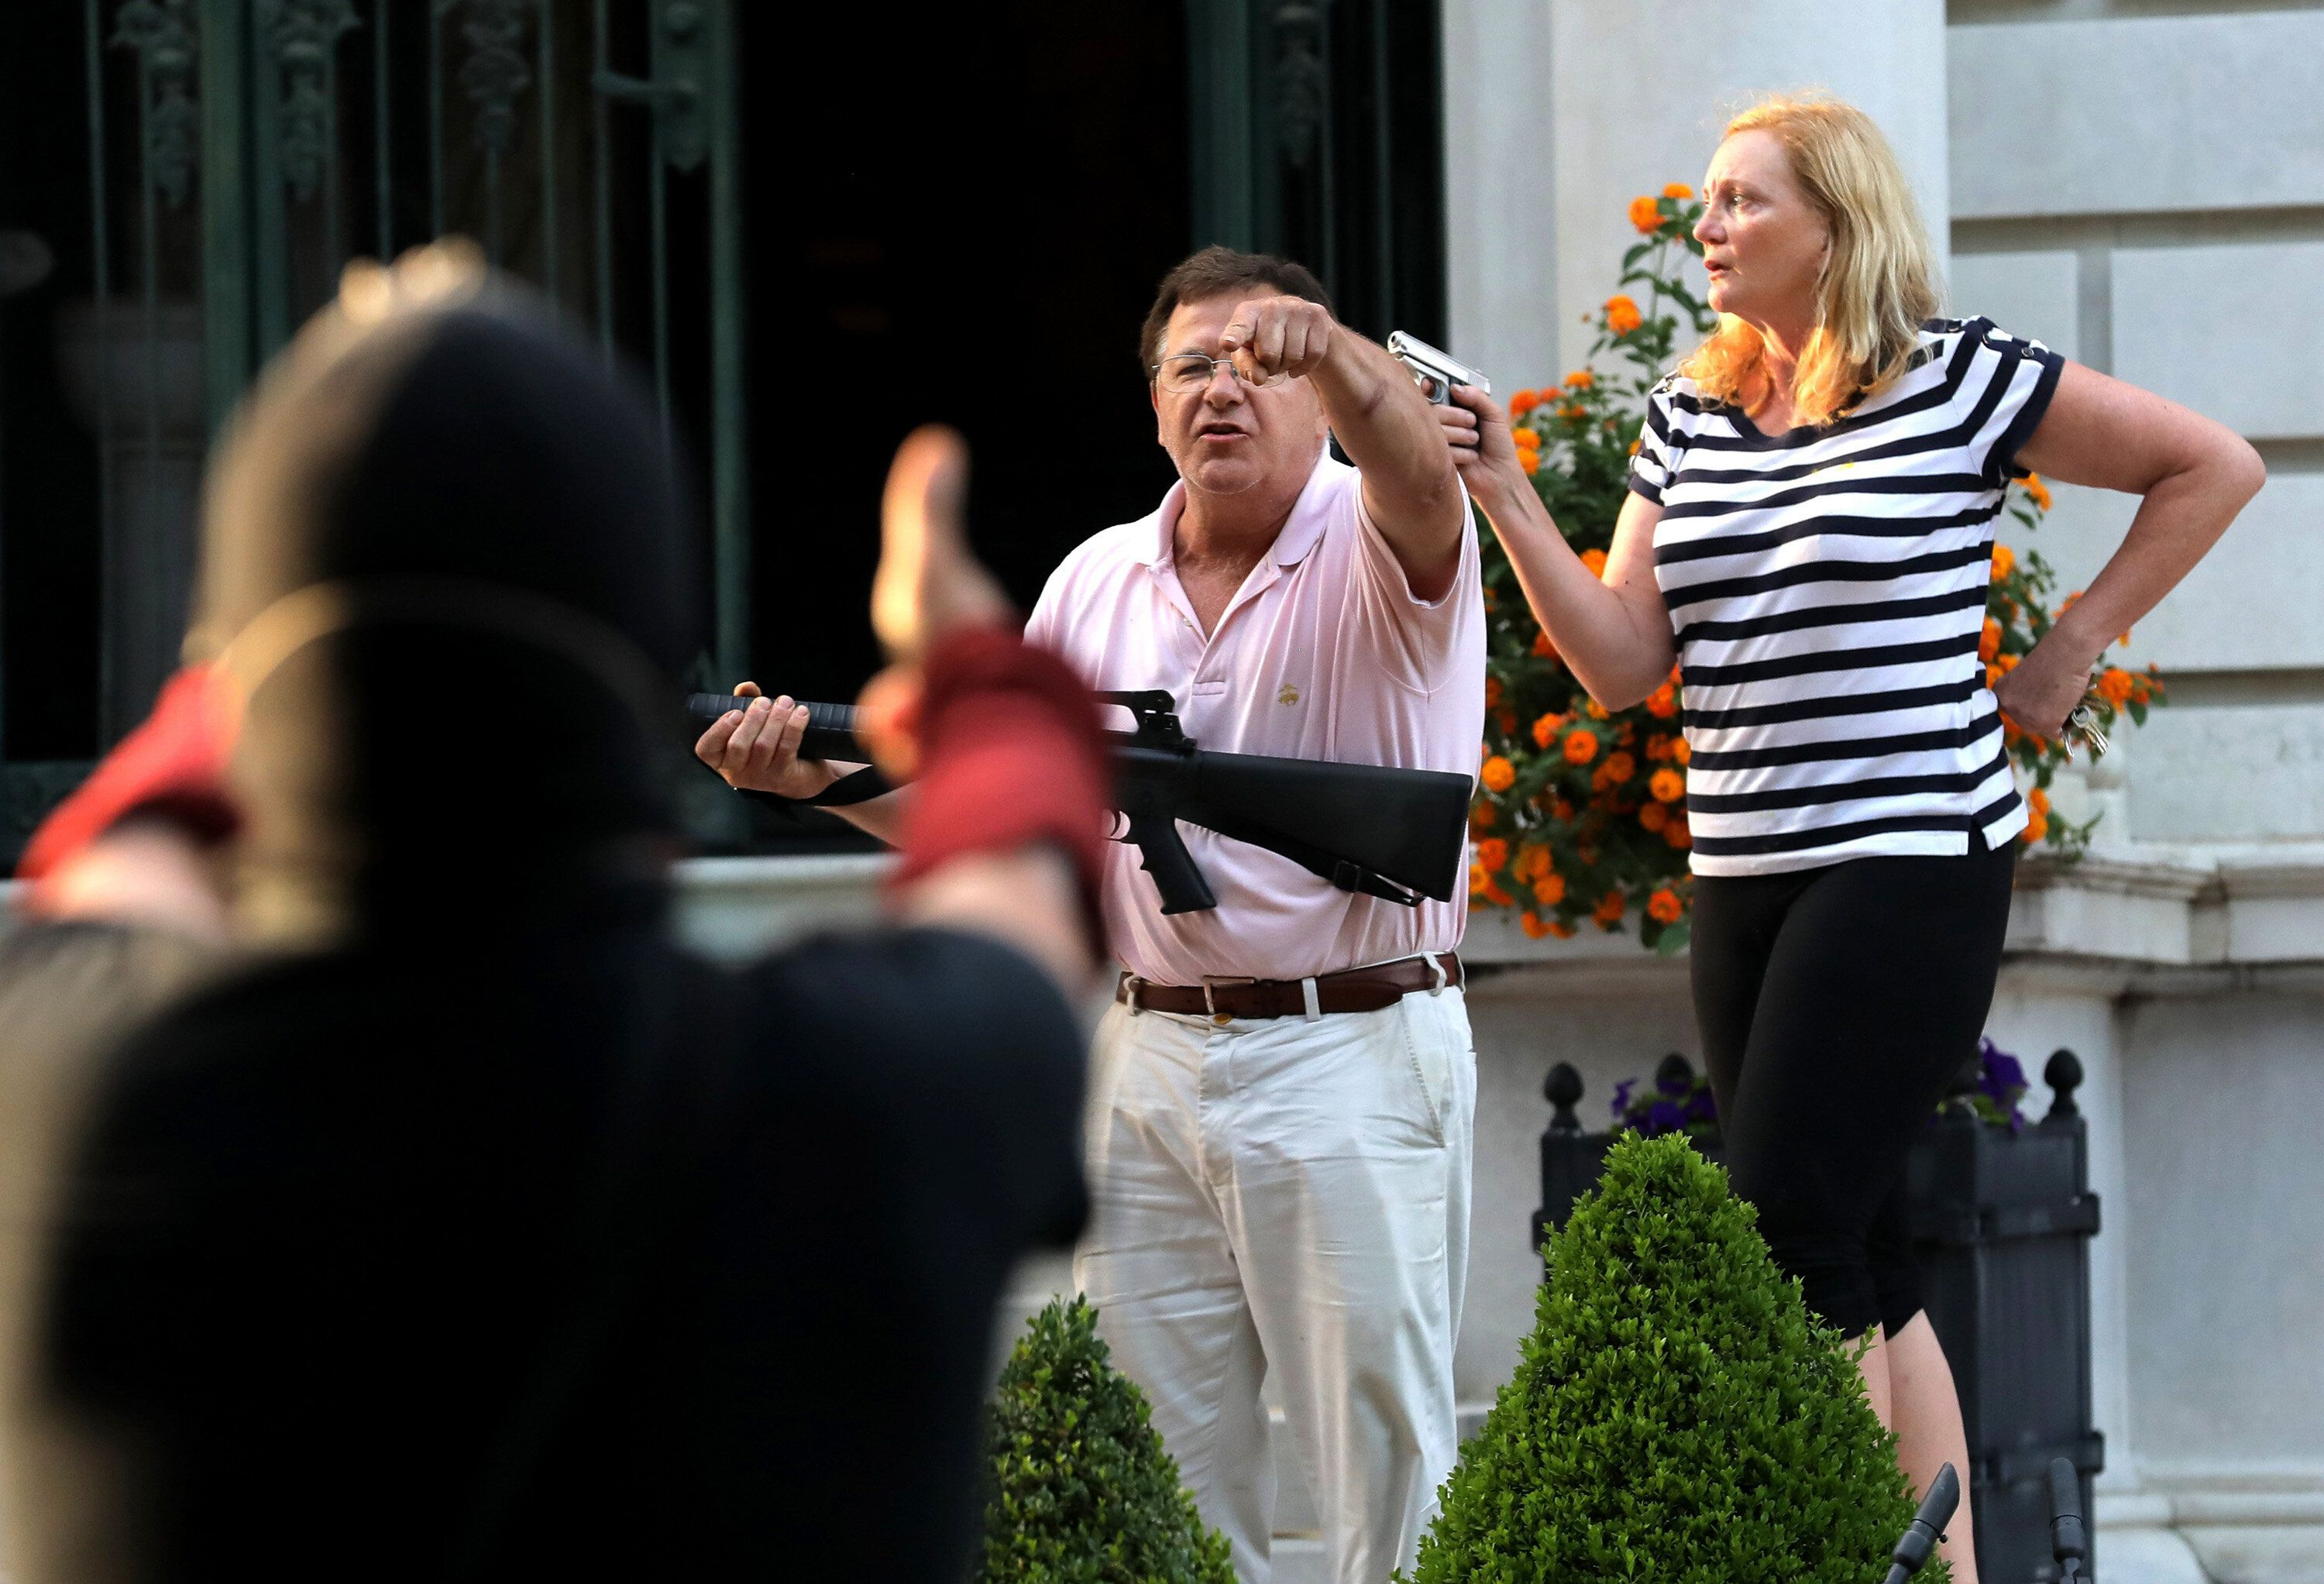 Armed homeowners Mark and Patricia McCloskey stand in front of their house as they confront protesters, June 28, 2020, in the